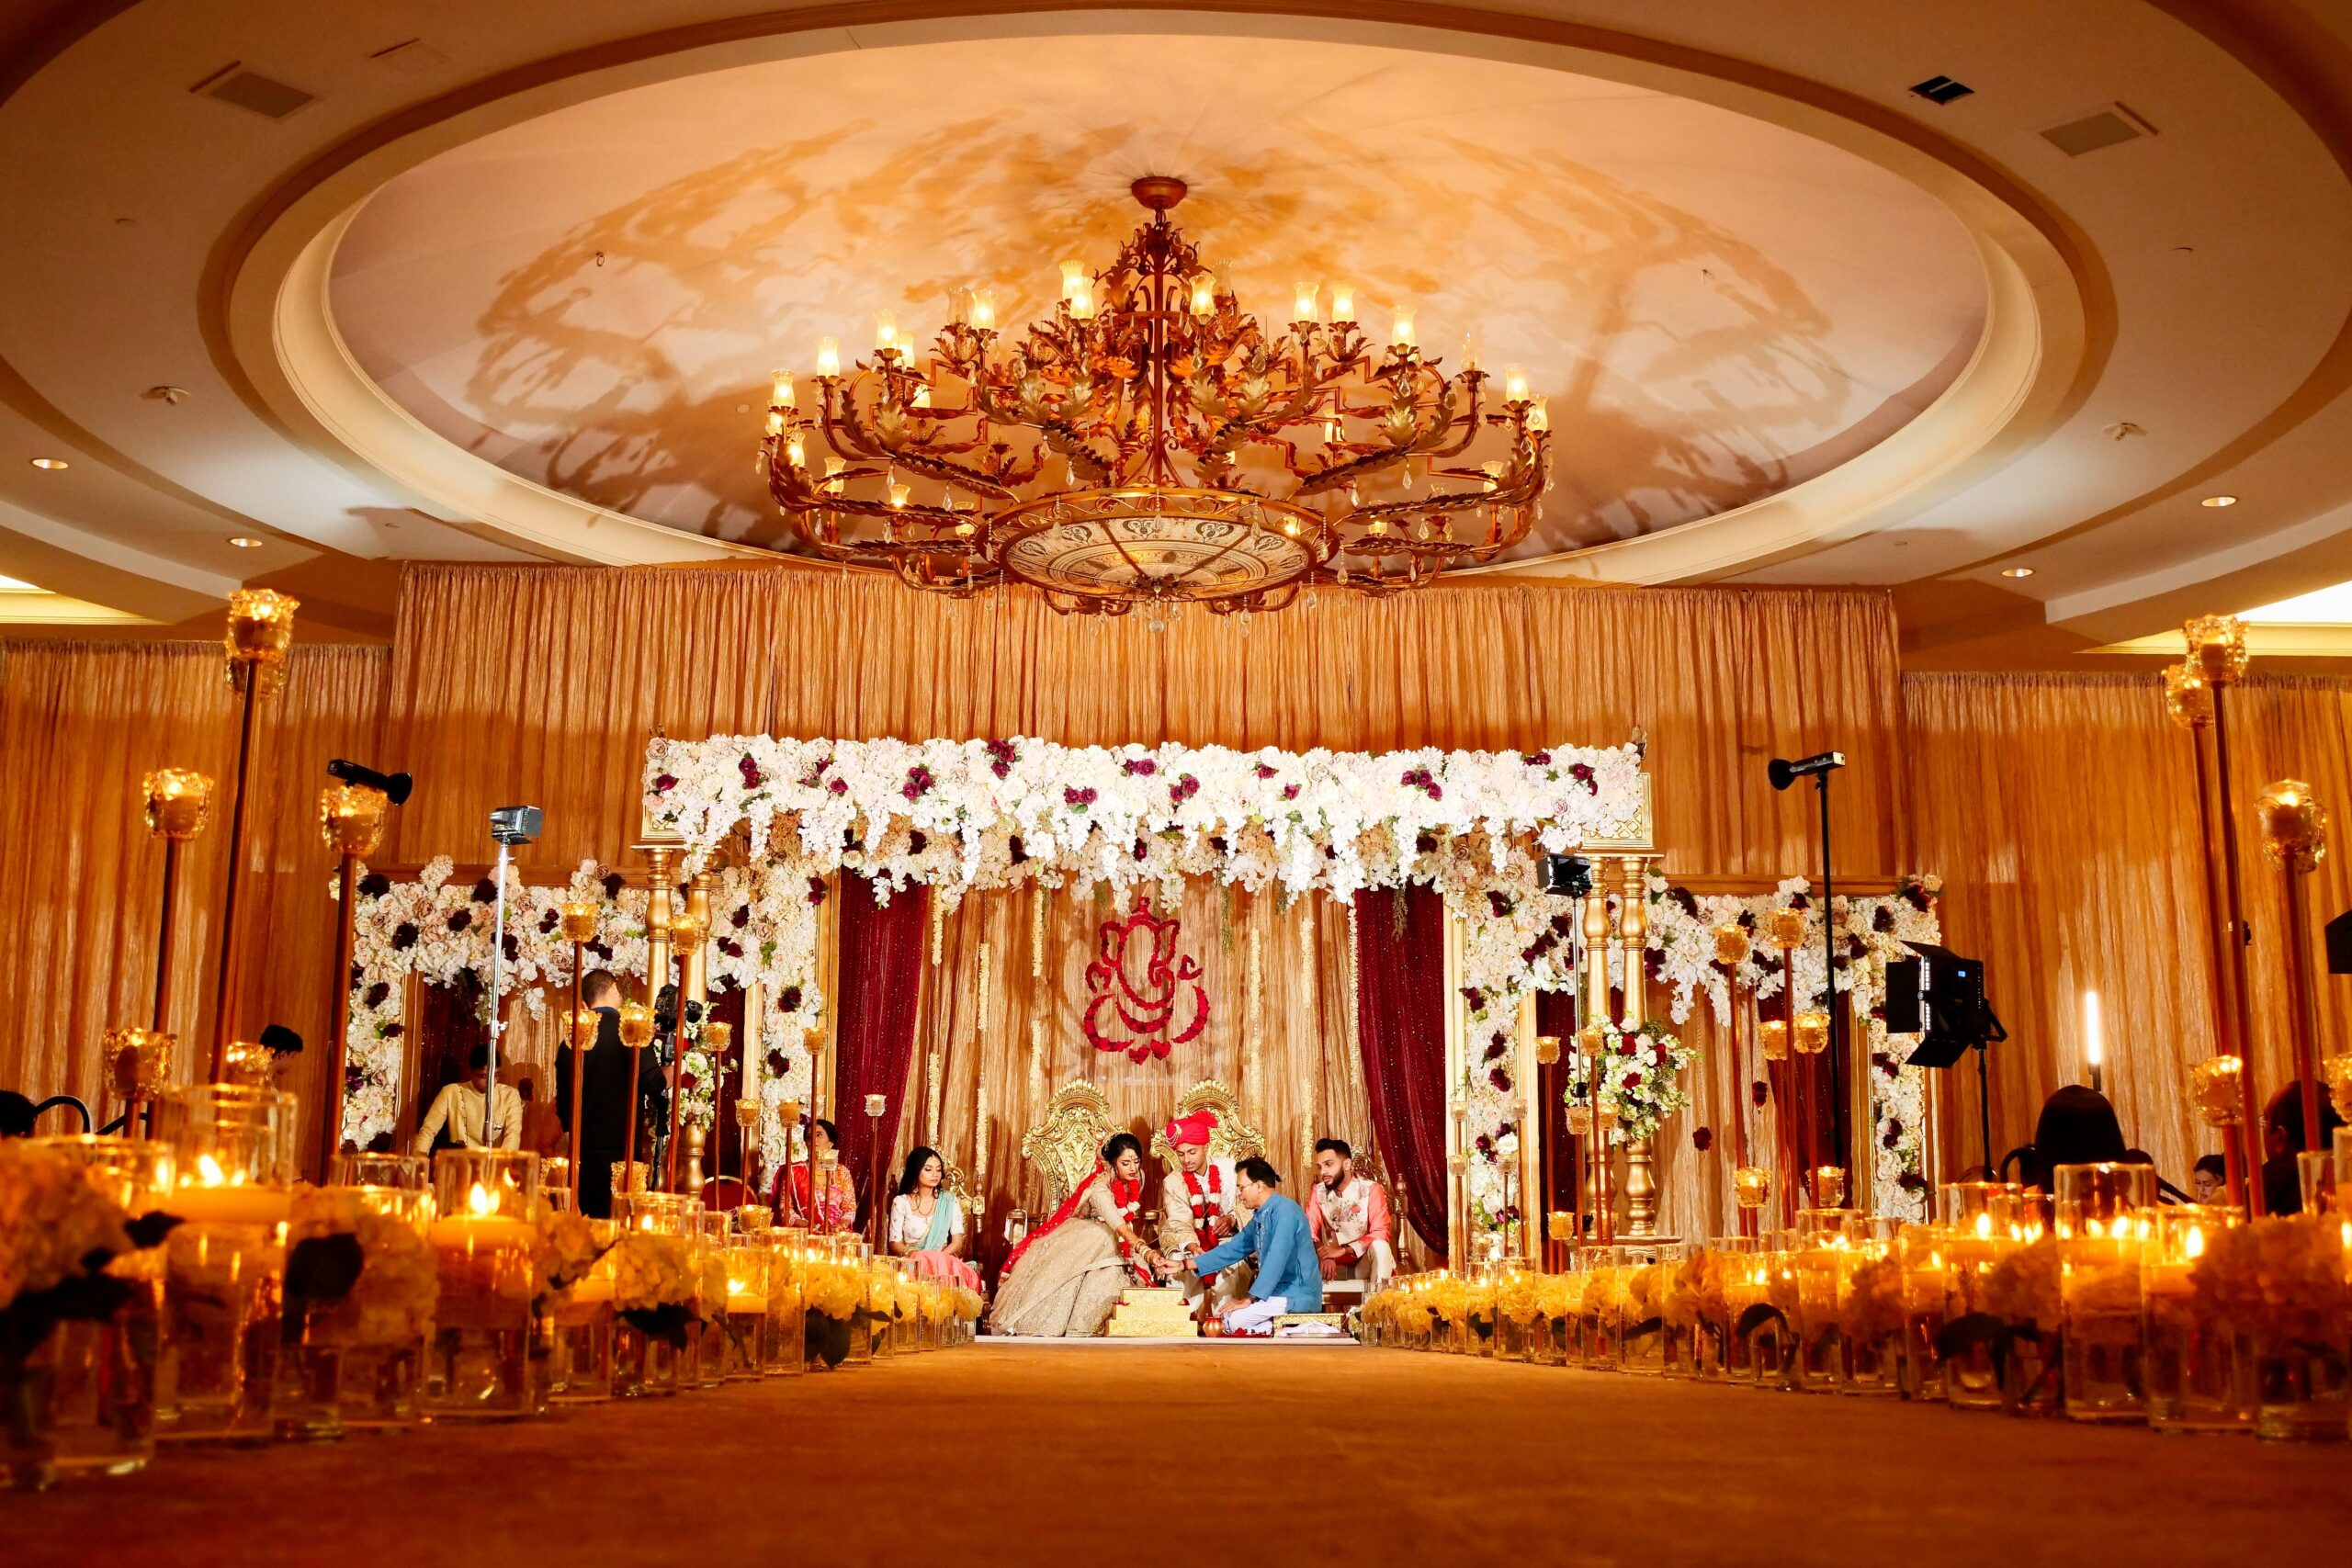 Have you been to an Indian Wedding?